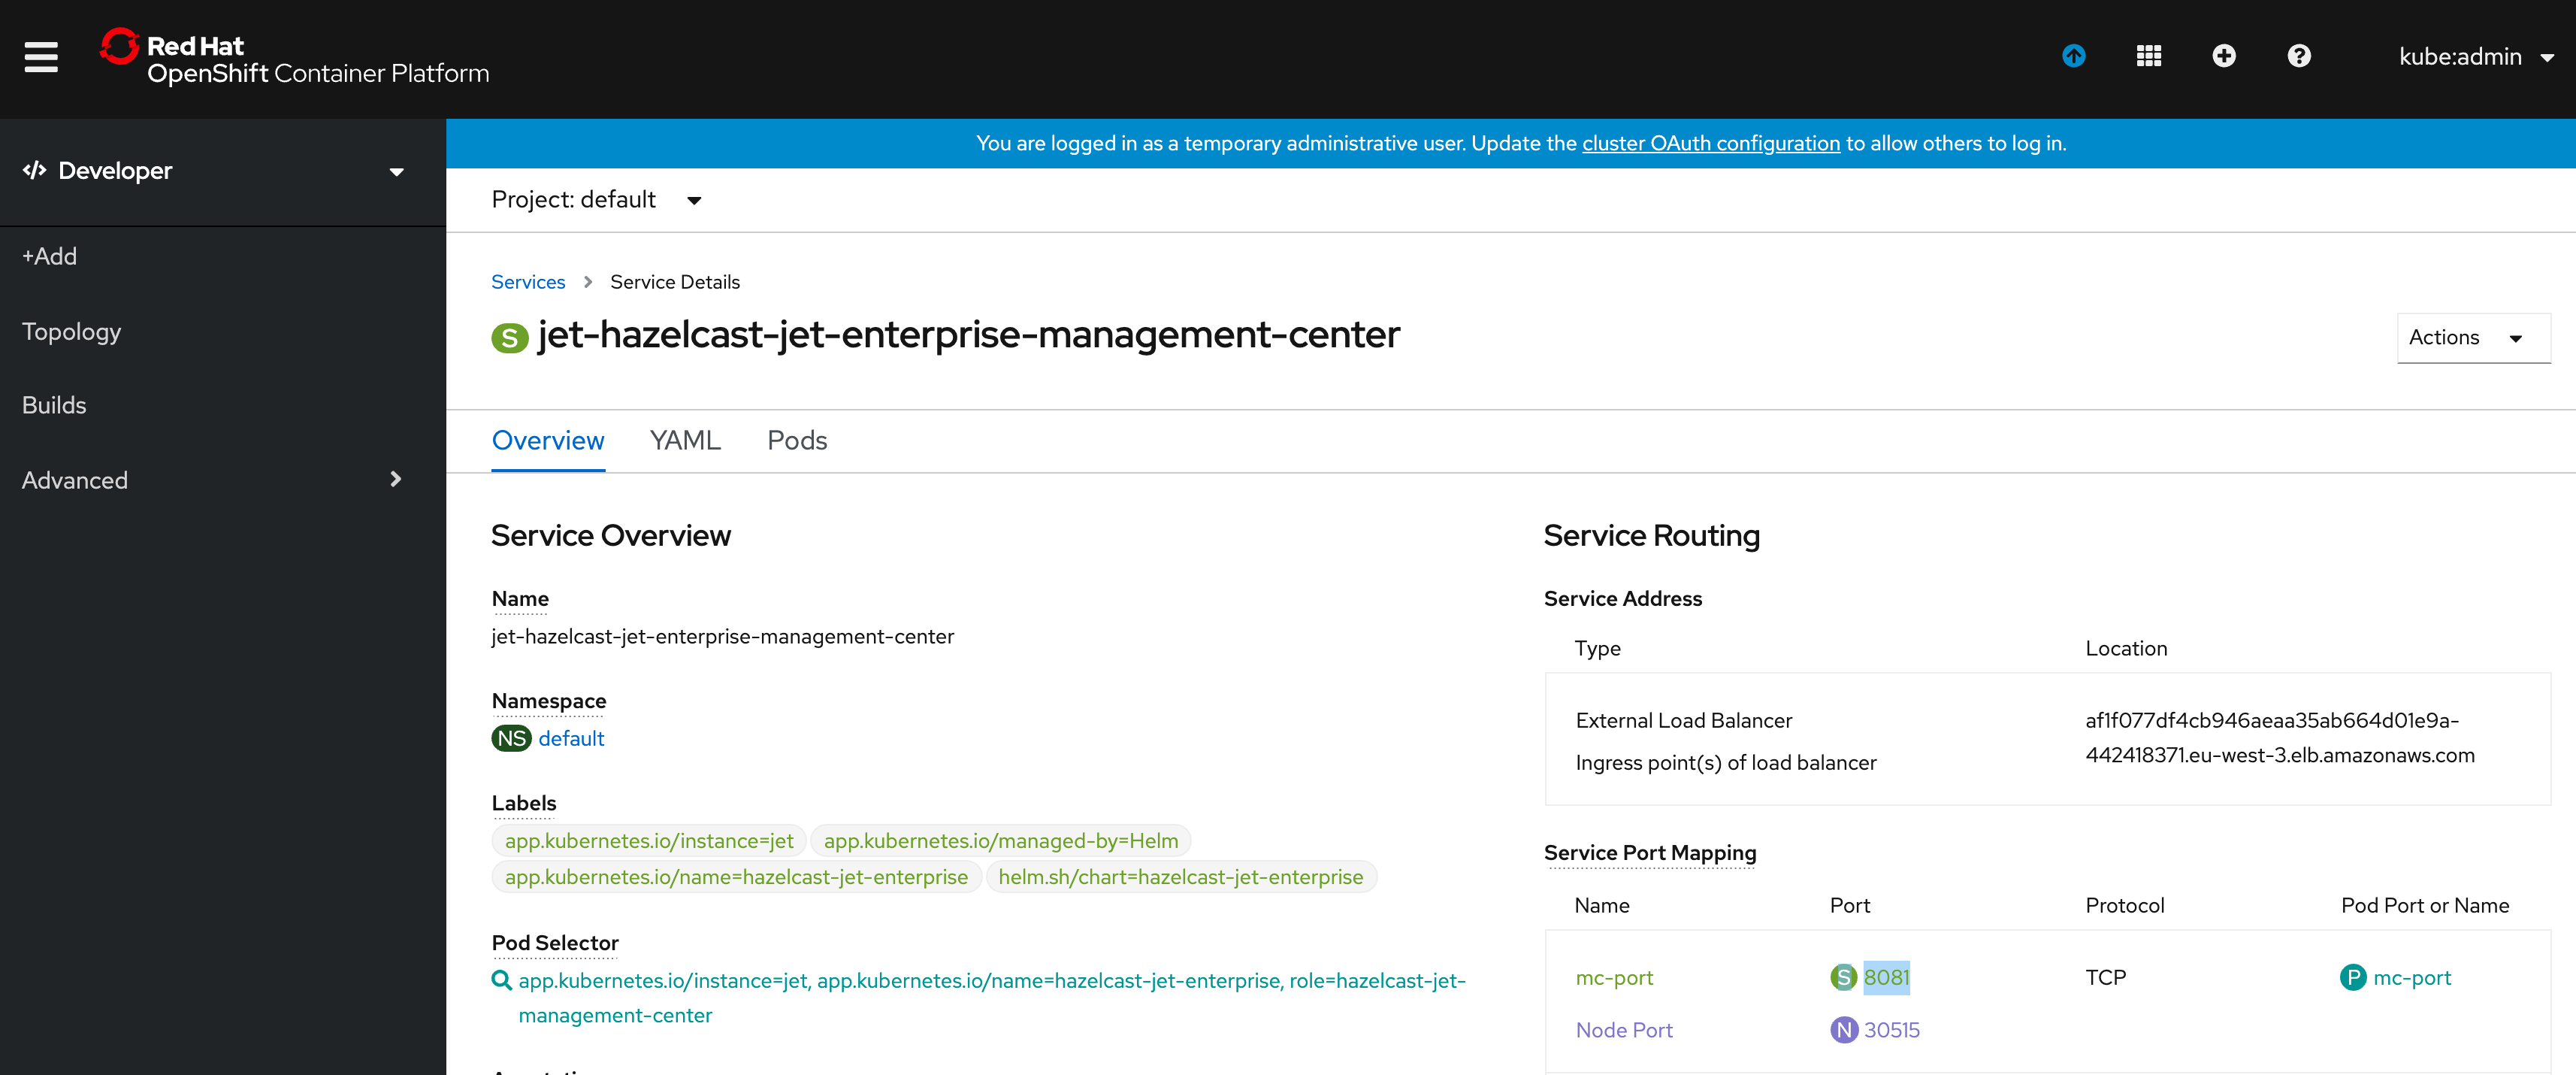 Hazelcast Jet Management Center Service